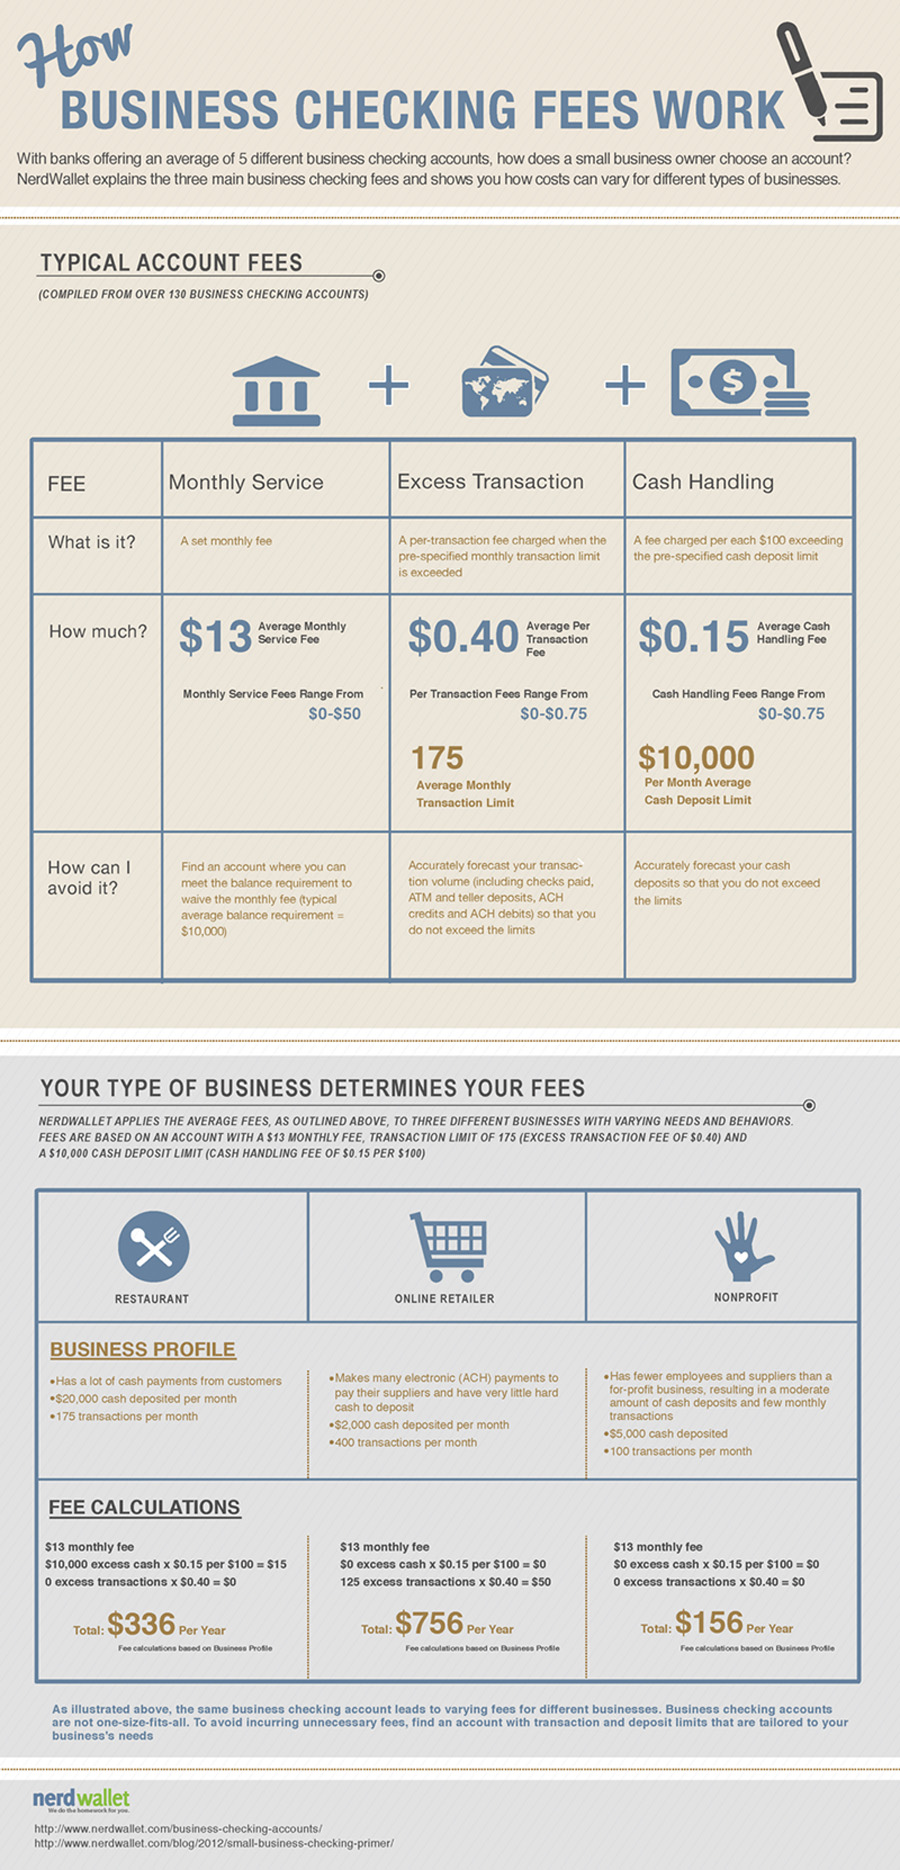 How Business Checking Fees Work